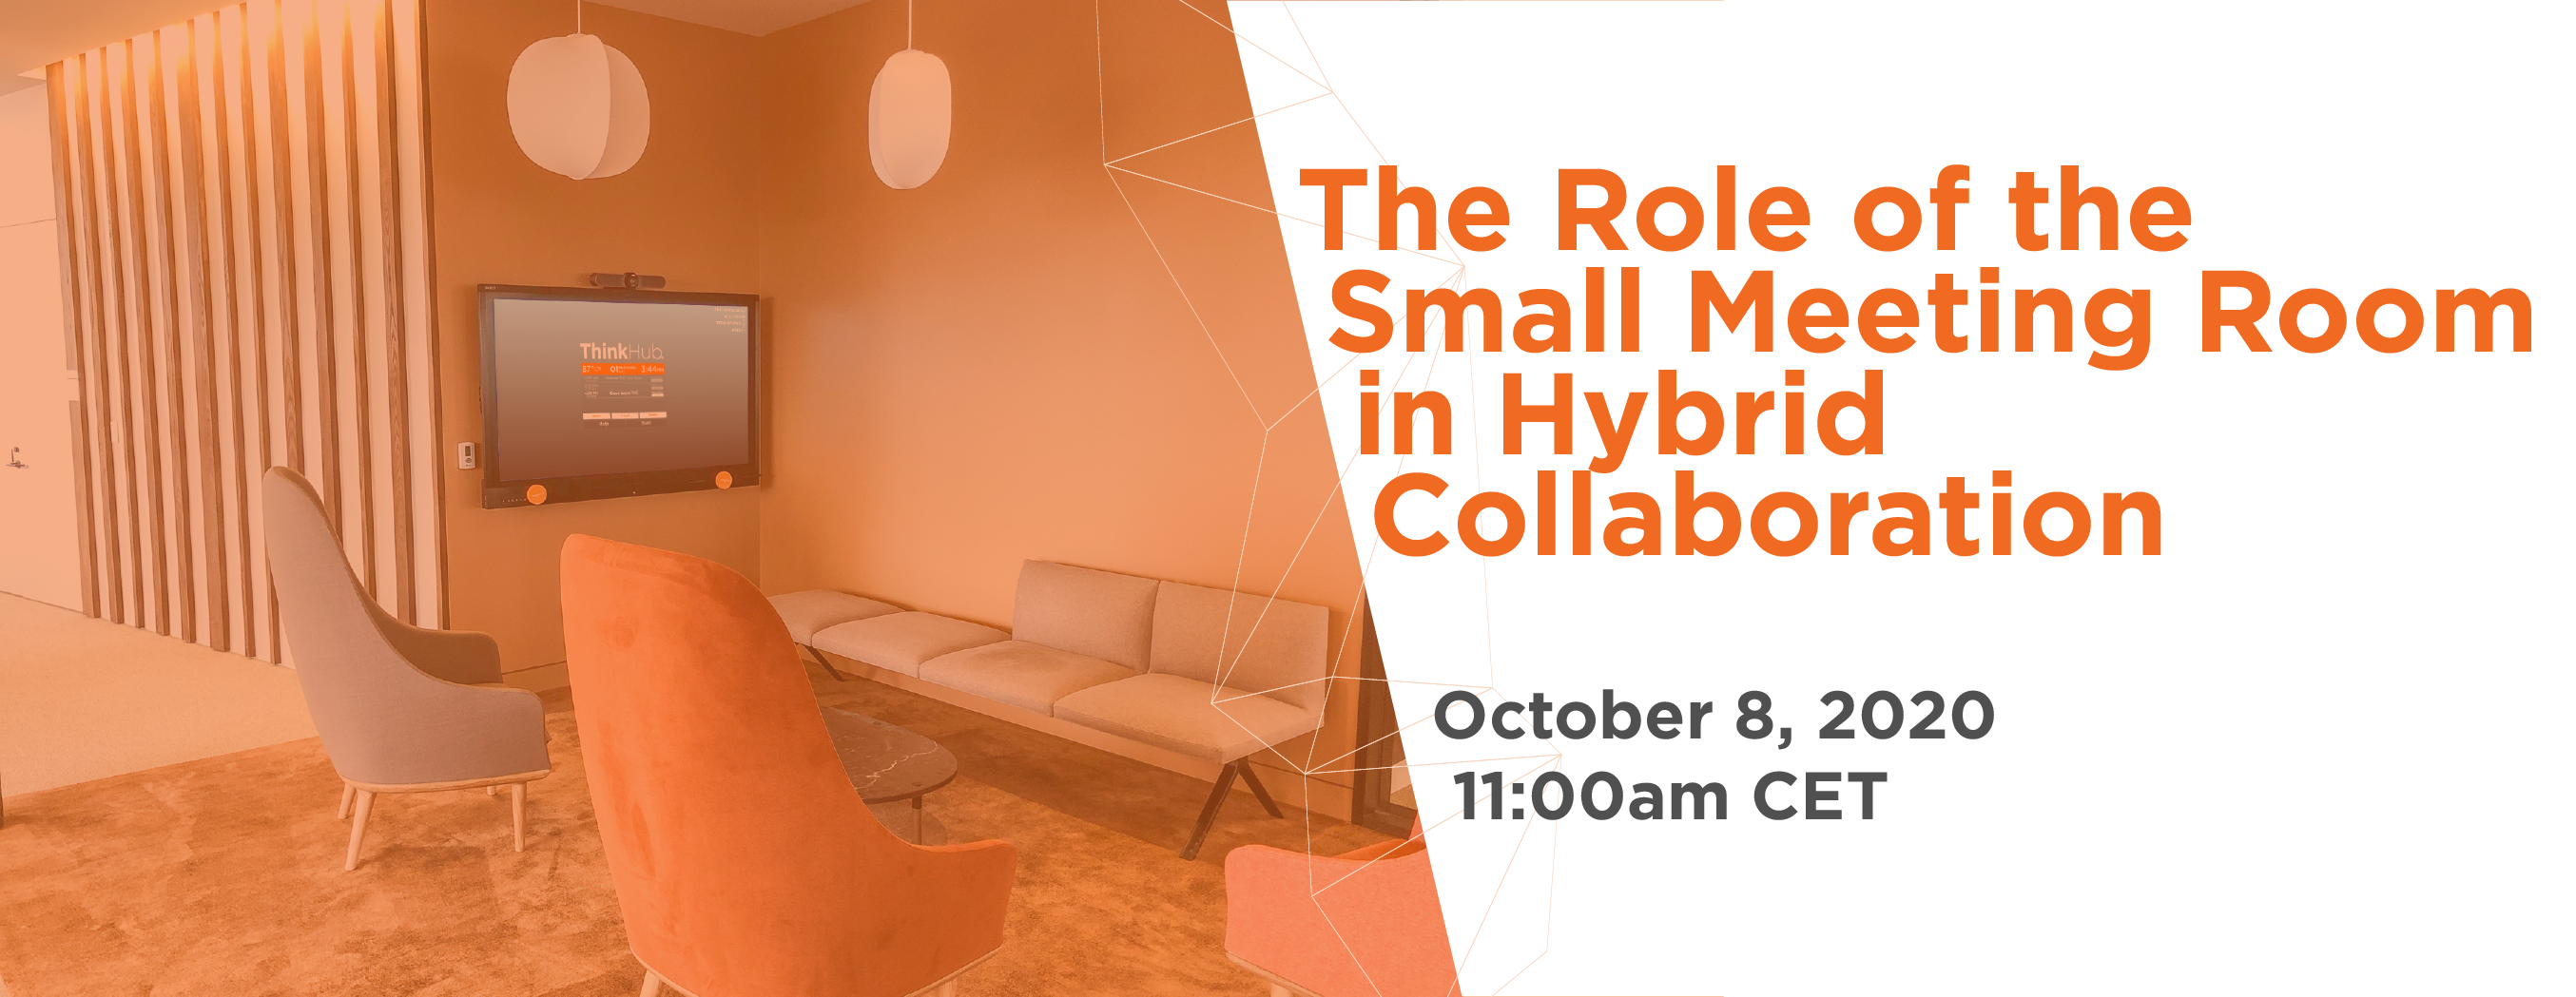 t1v-the-role-of-the-small-meeting-room-in-hybrid-collaboration-webinar-graphic-10-08-2020-cet-email-55